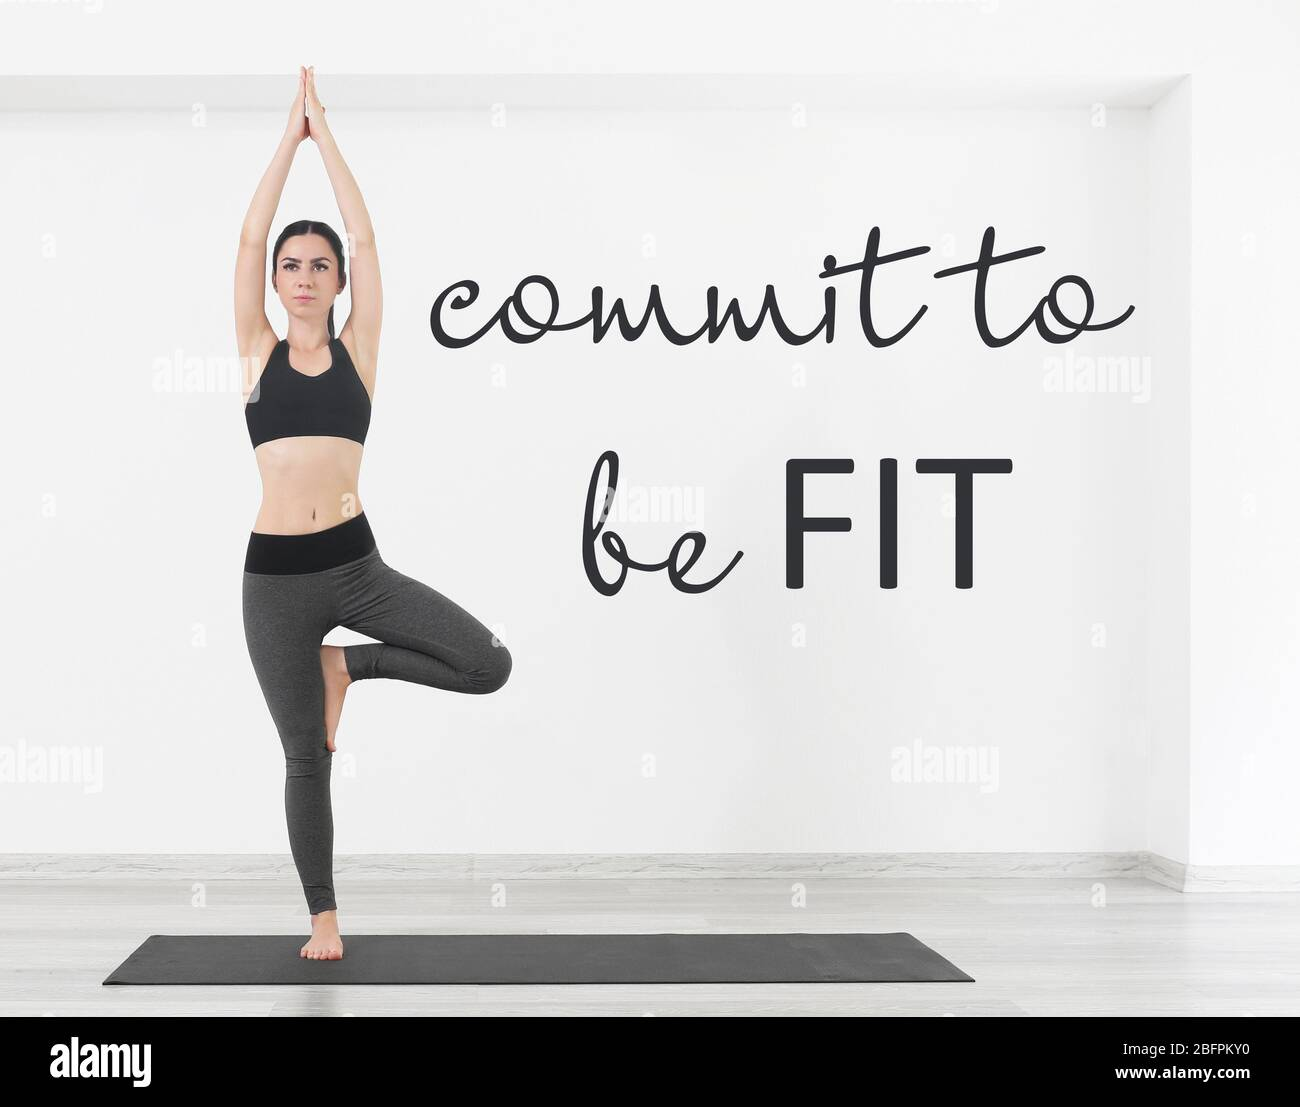 Fitness Quotes Text Commit To Be Fit And Young Woman Practicing Yoga On White Wall Background Stock Photo Alamy